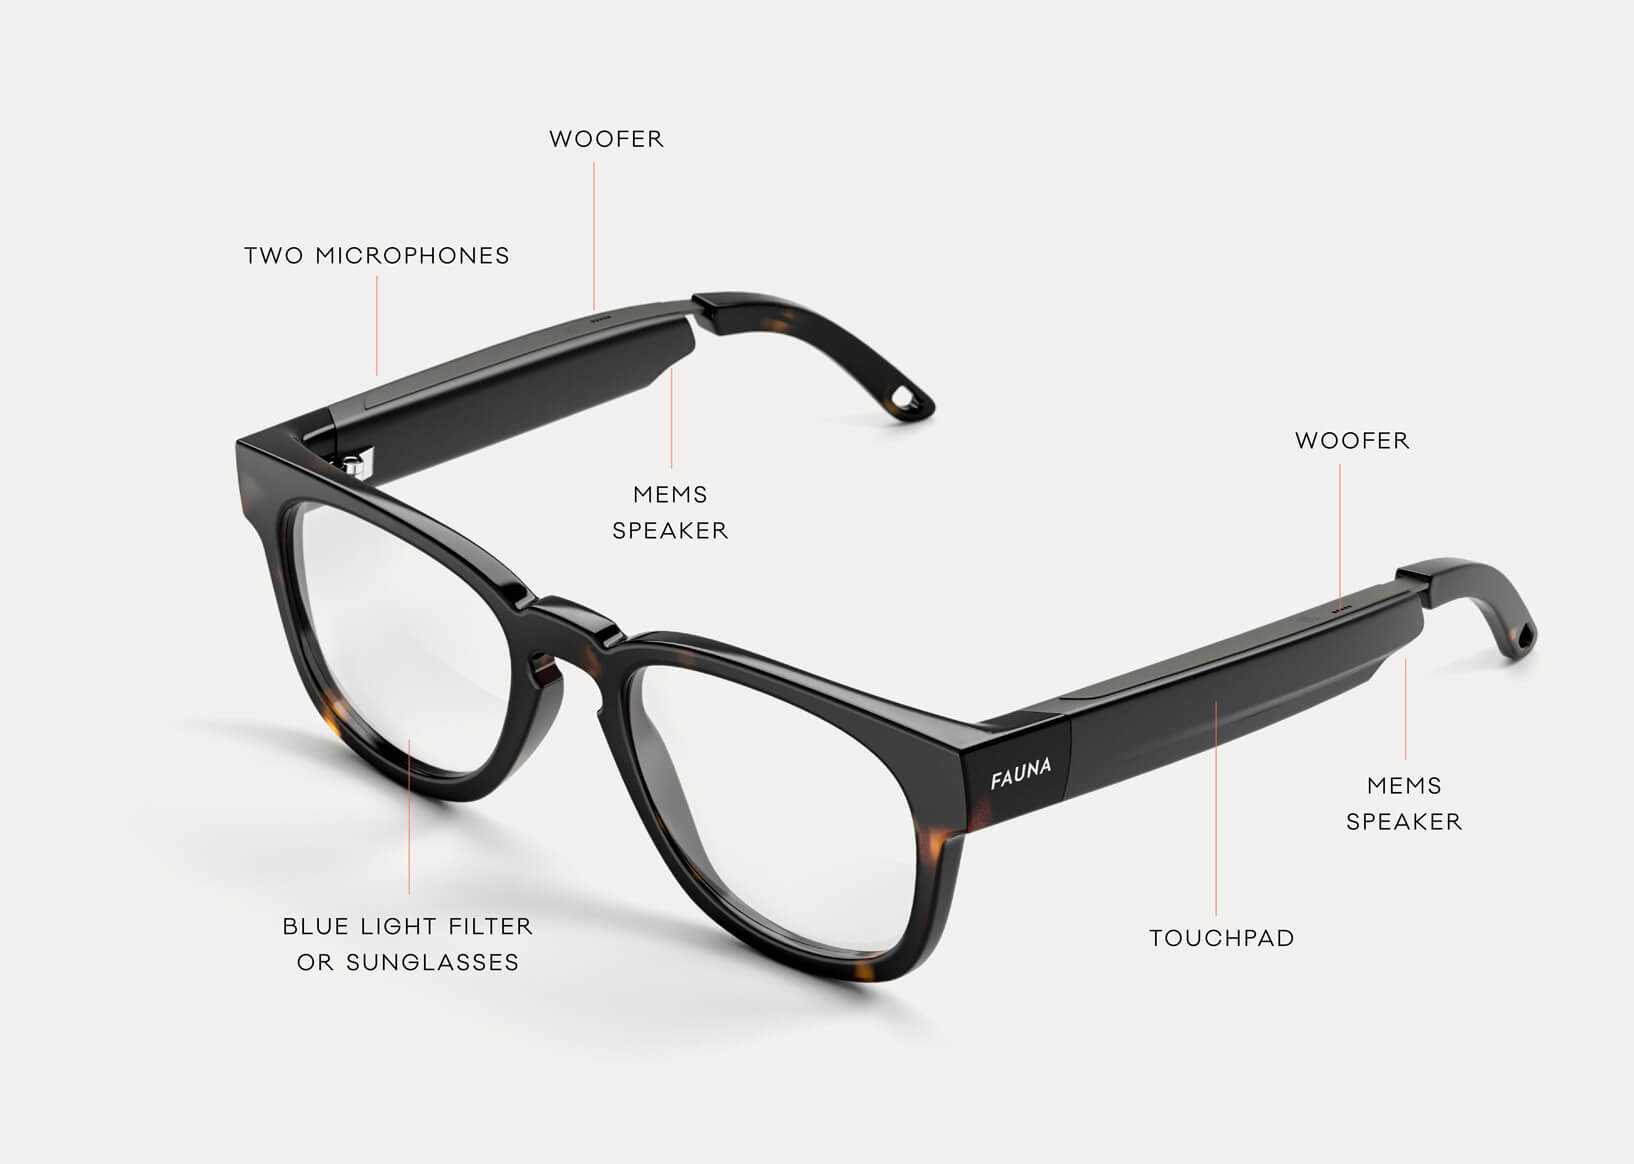 Fauna audio glasses with speakers, touchpad, microphones.